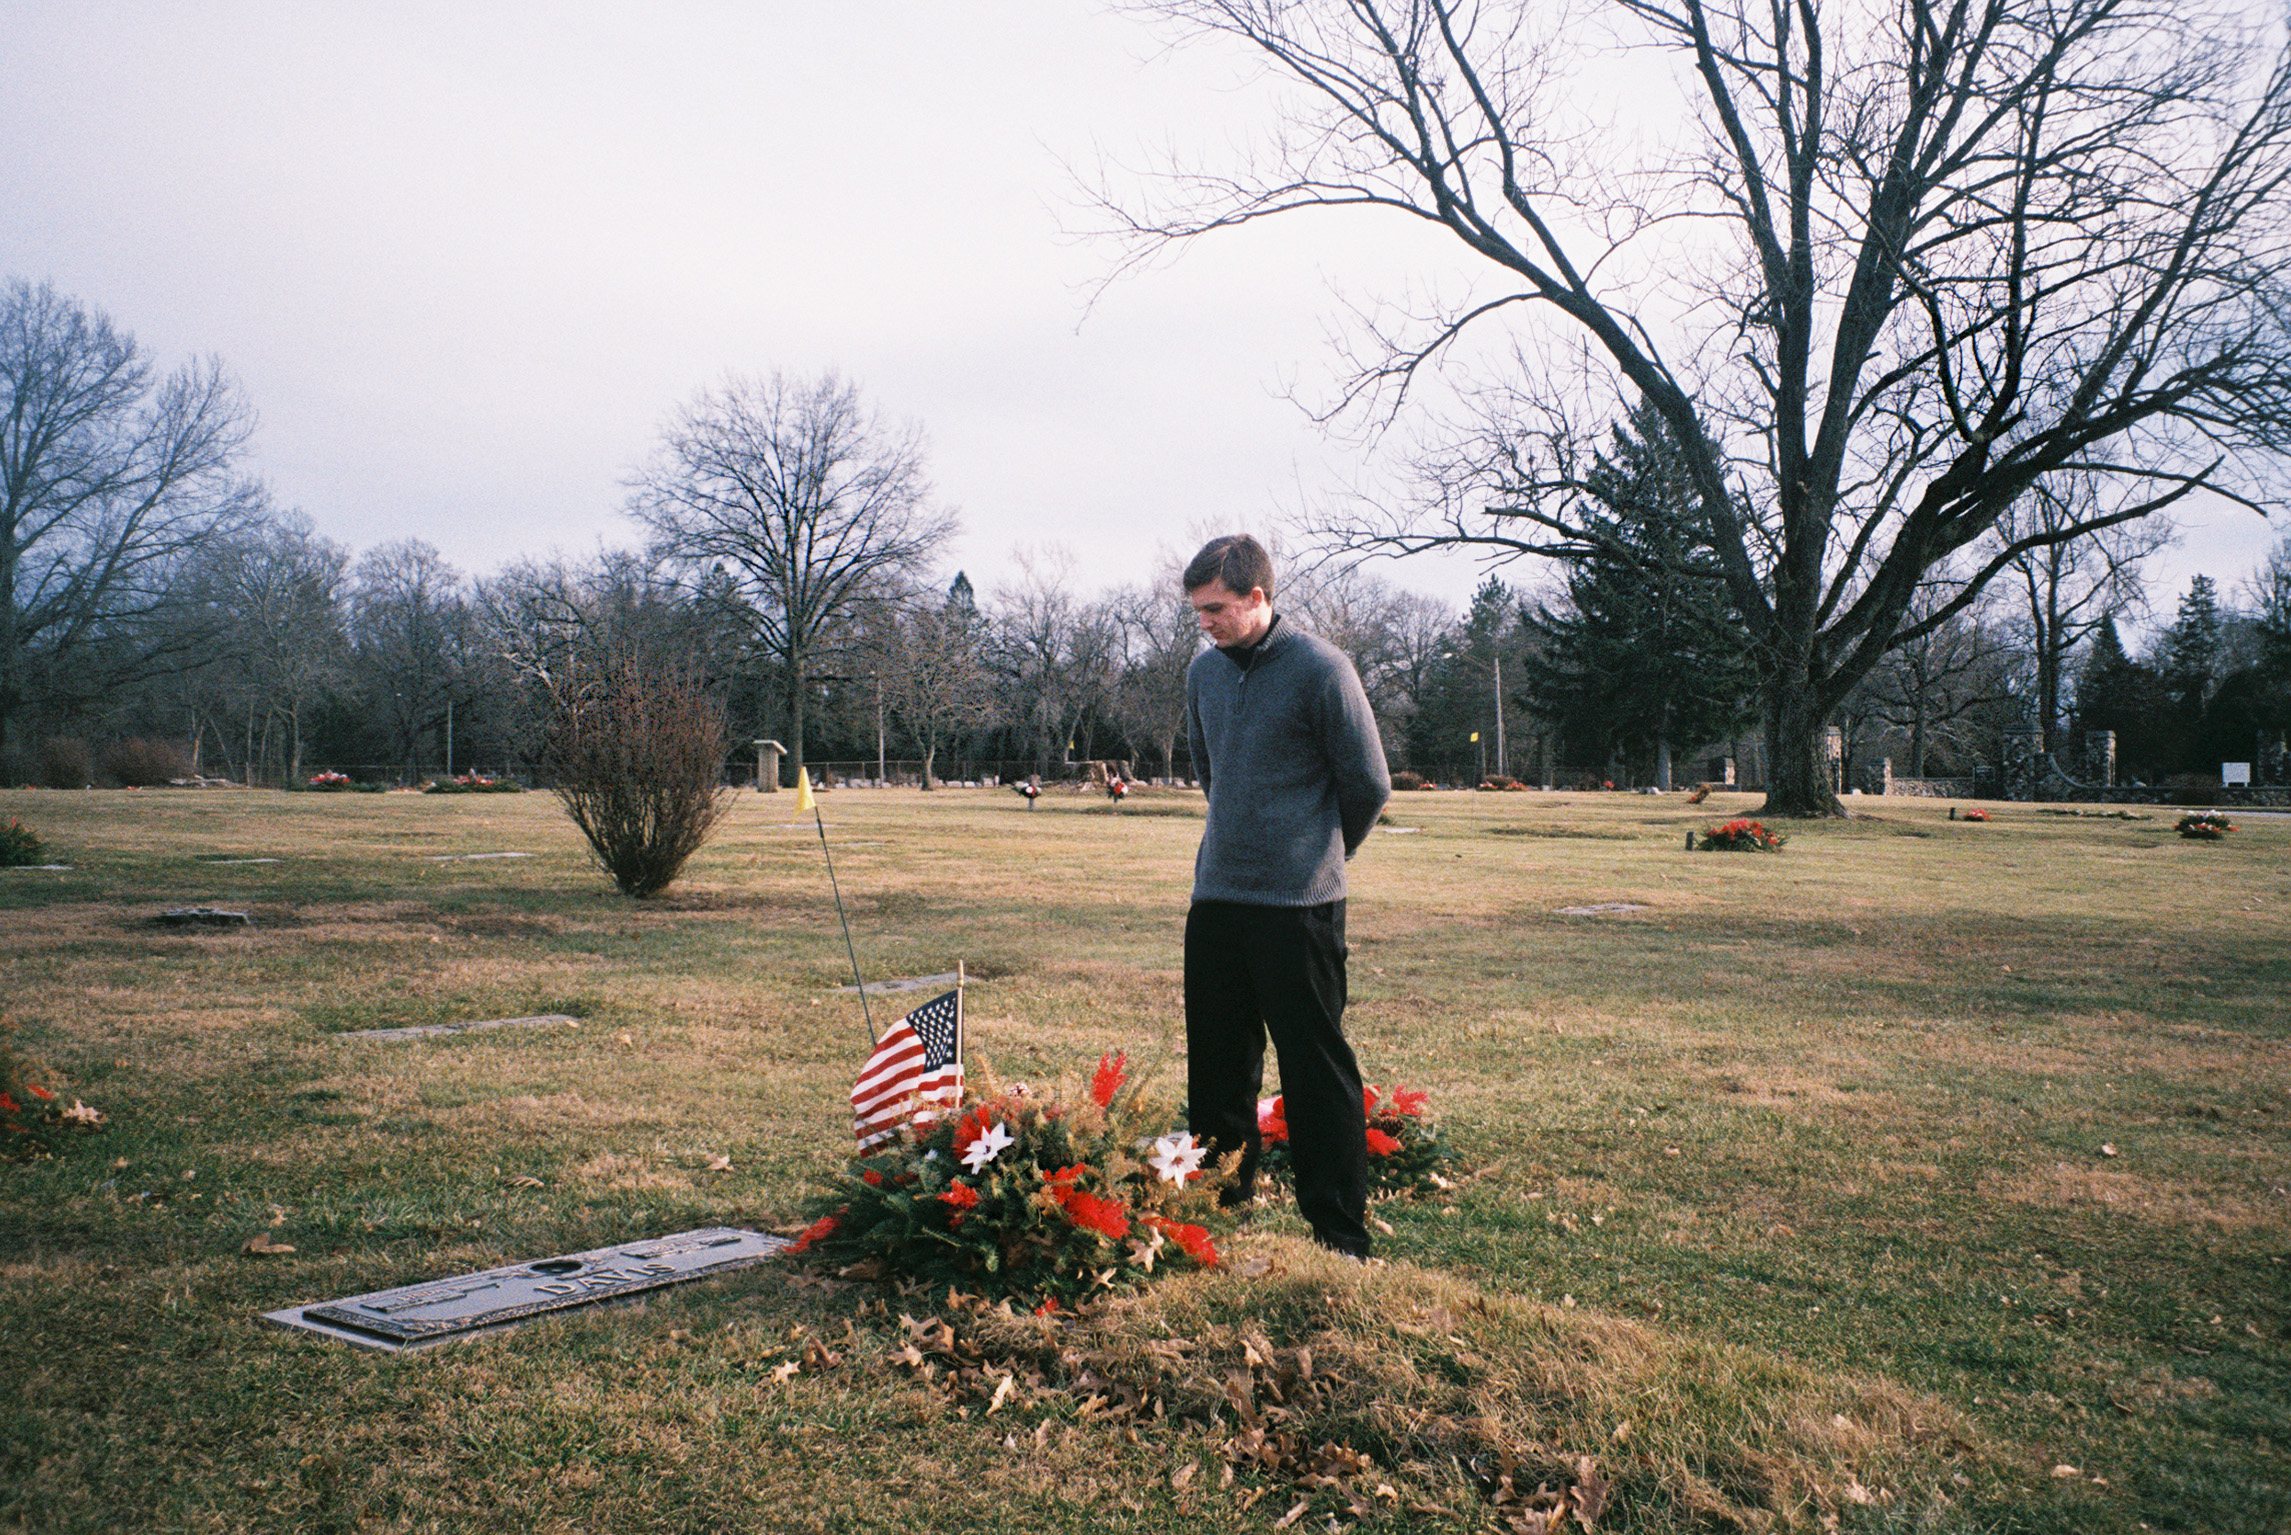 Brian mourns his late grandfather at Spring Hill cemetery in Danville. With his grandfather no longer needing assistance, Brian prepares to make his next move to Fountain, Colorado, a town that is known to be home to thousands of active and inactive military personnel. He will stay with an old Navy friend until he can get back on his feet and find a job.